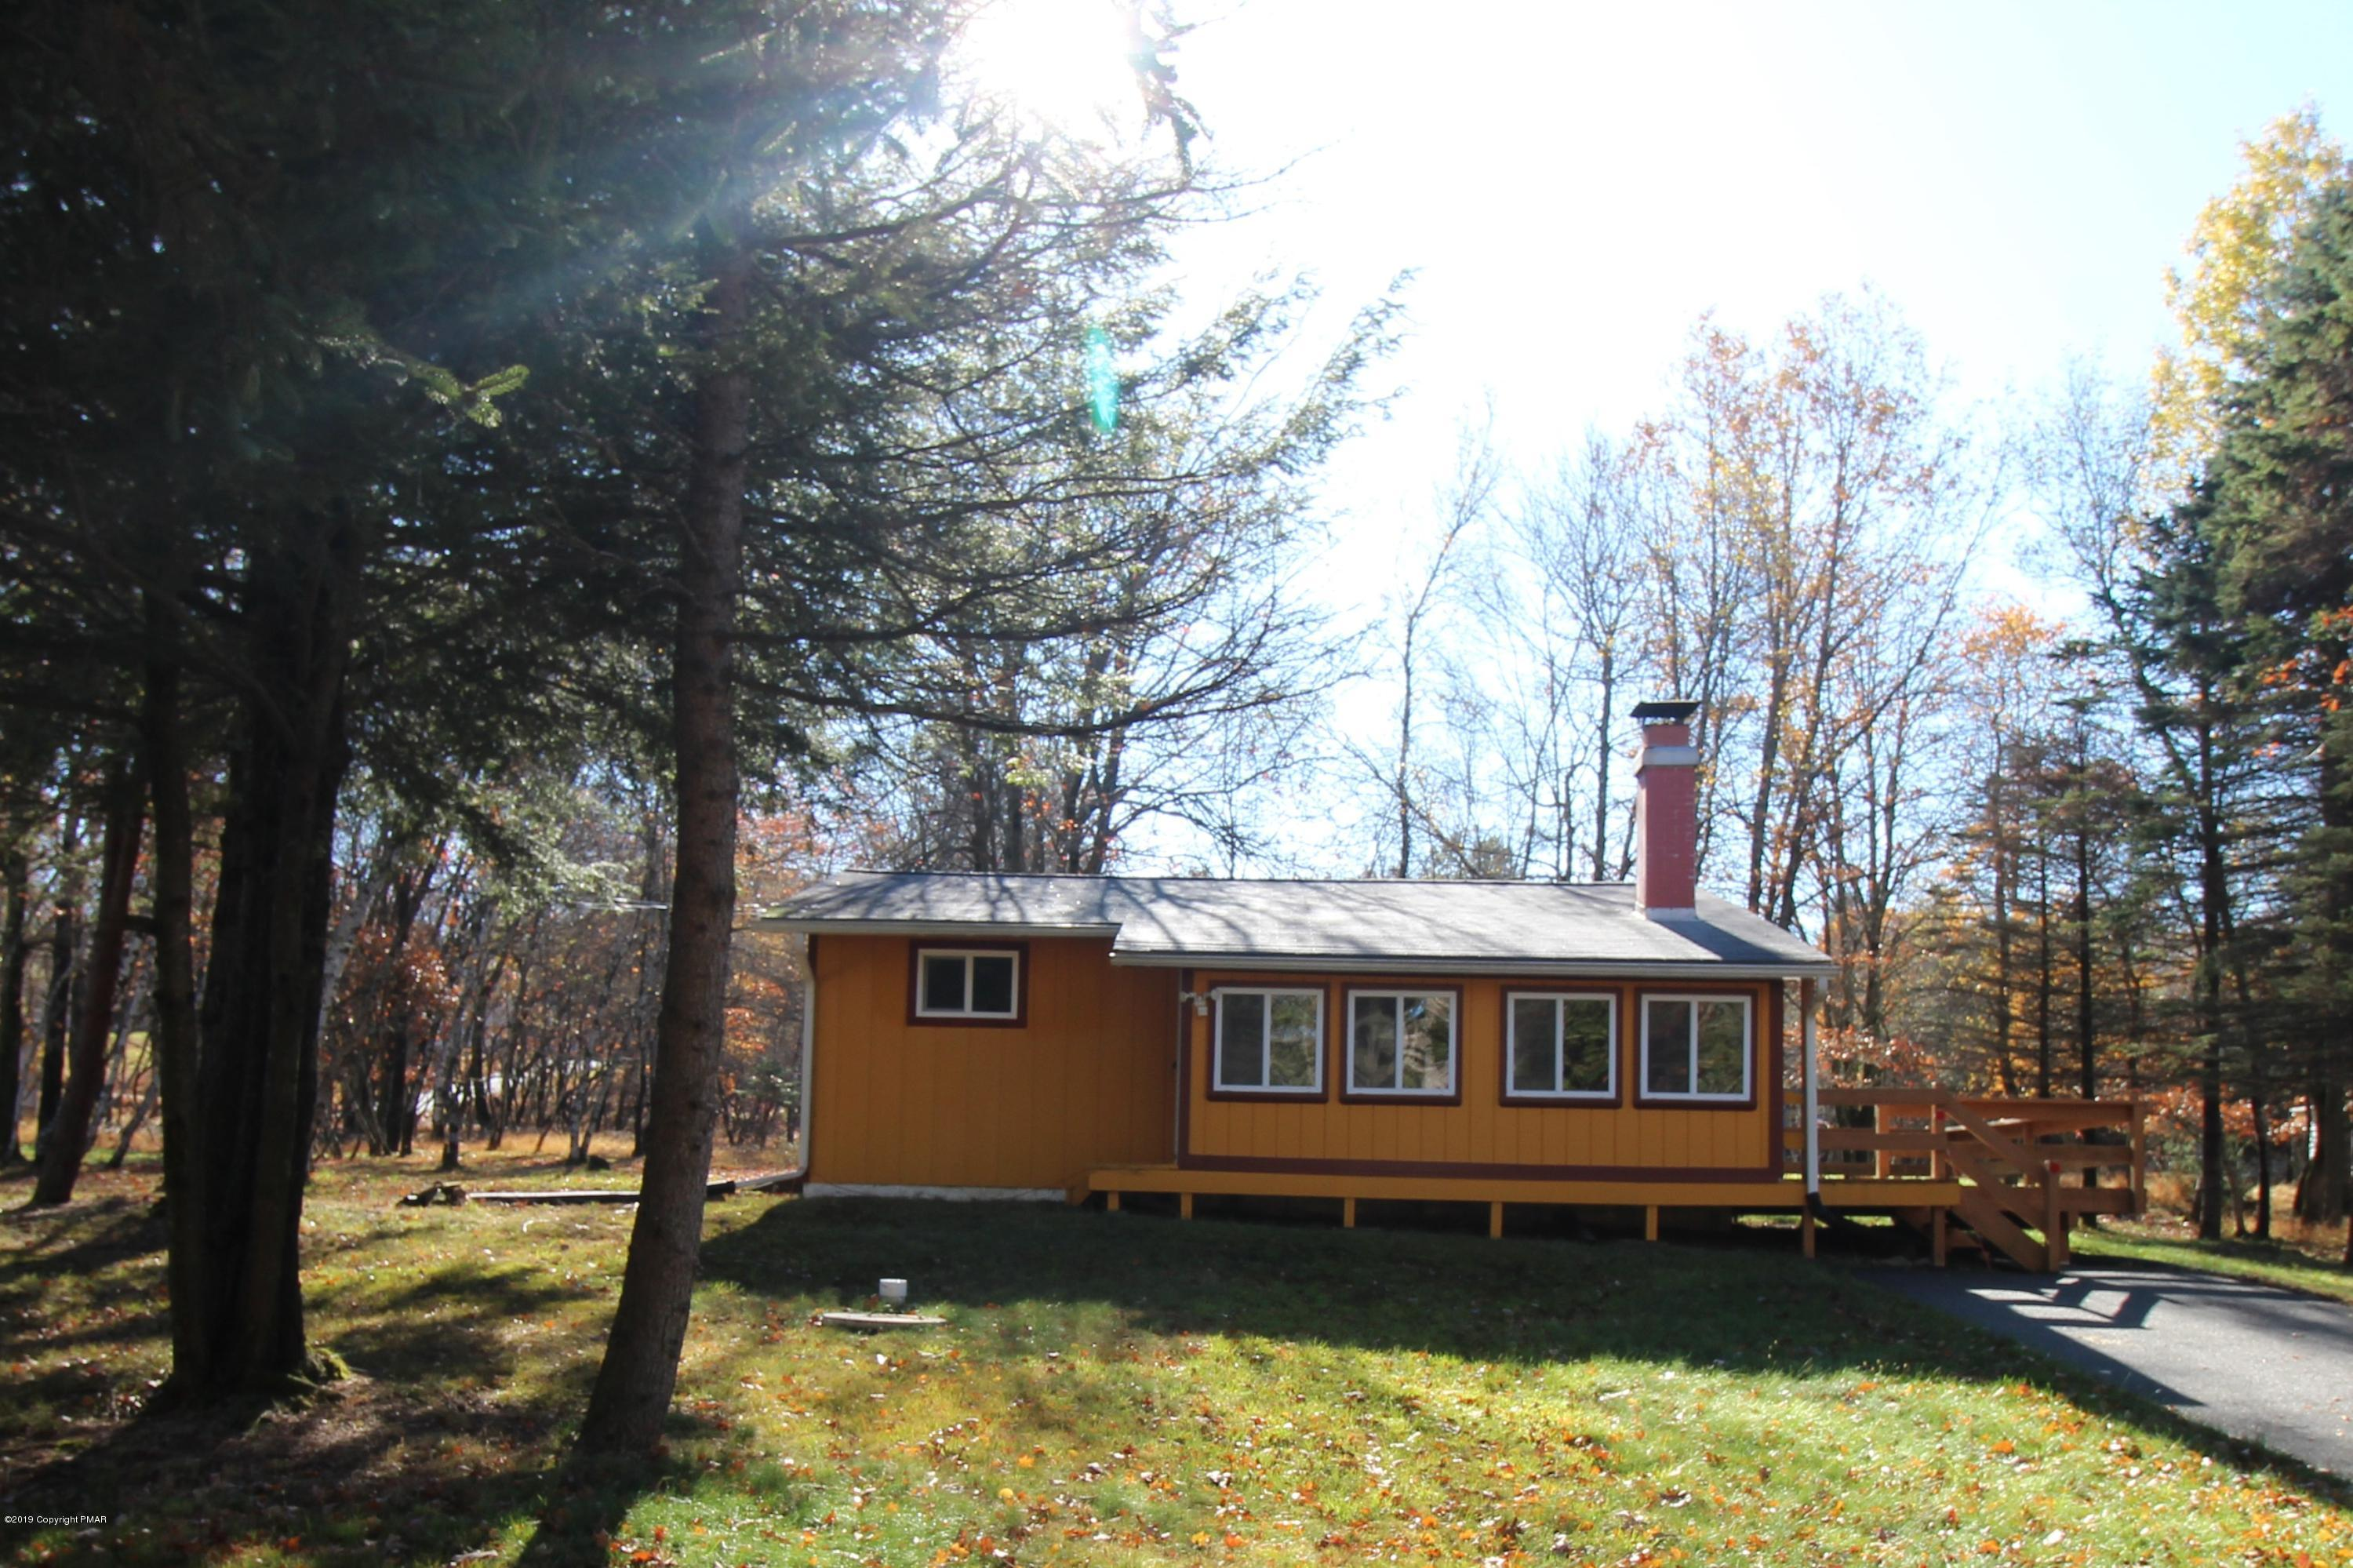 268 Mountain Rd, Albrightsville, PA 12864